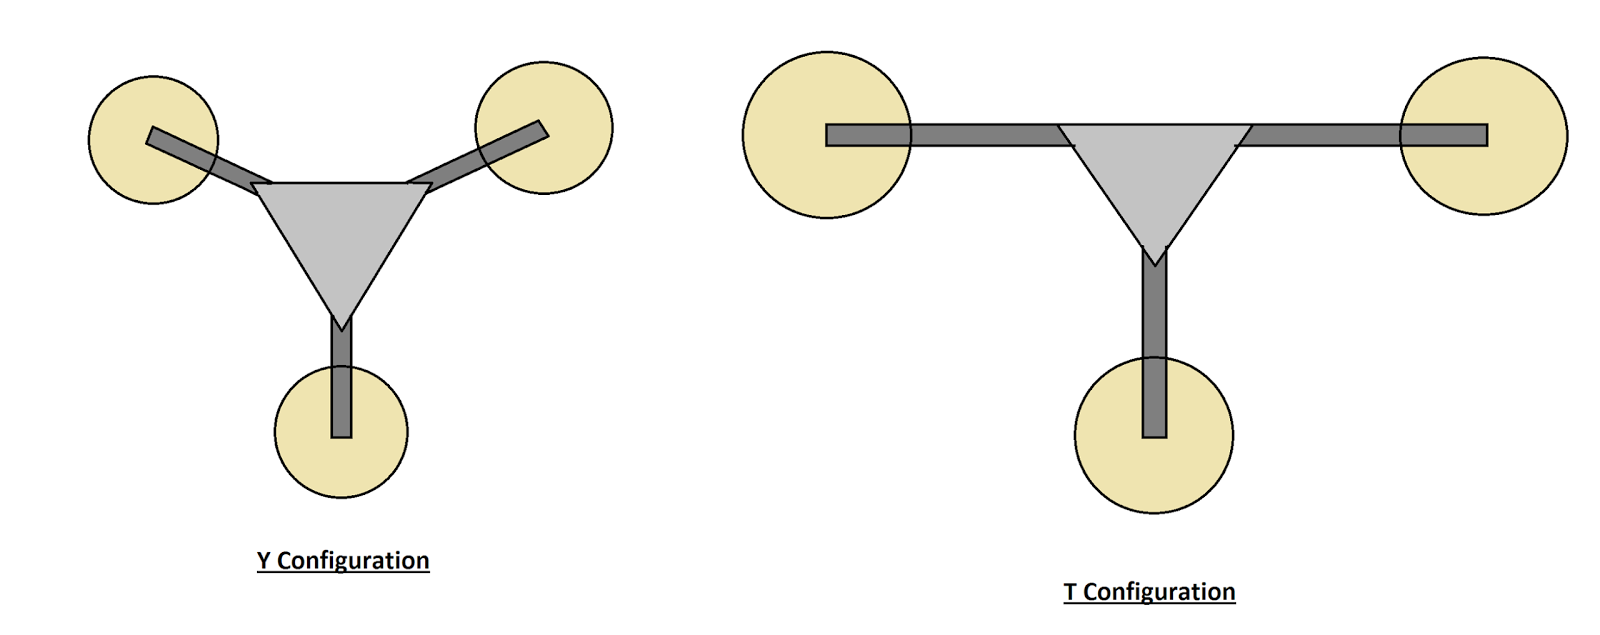 Basic Design (just created in paint):